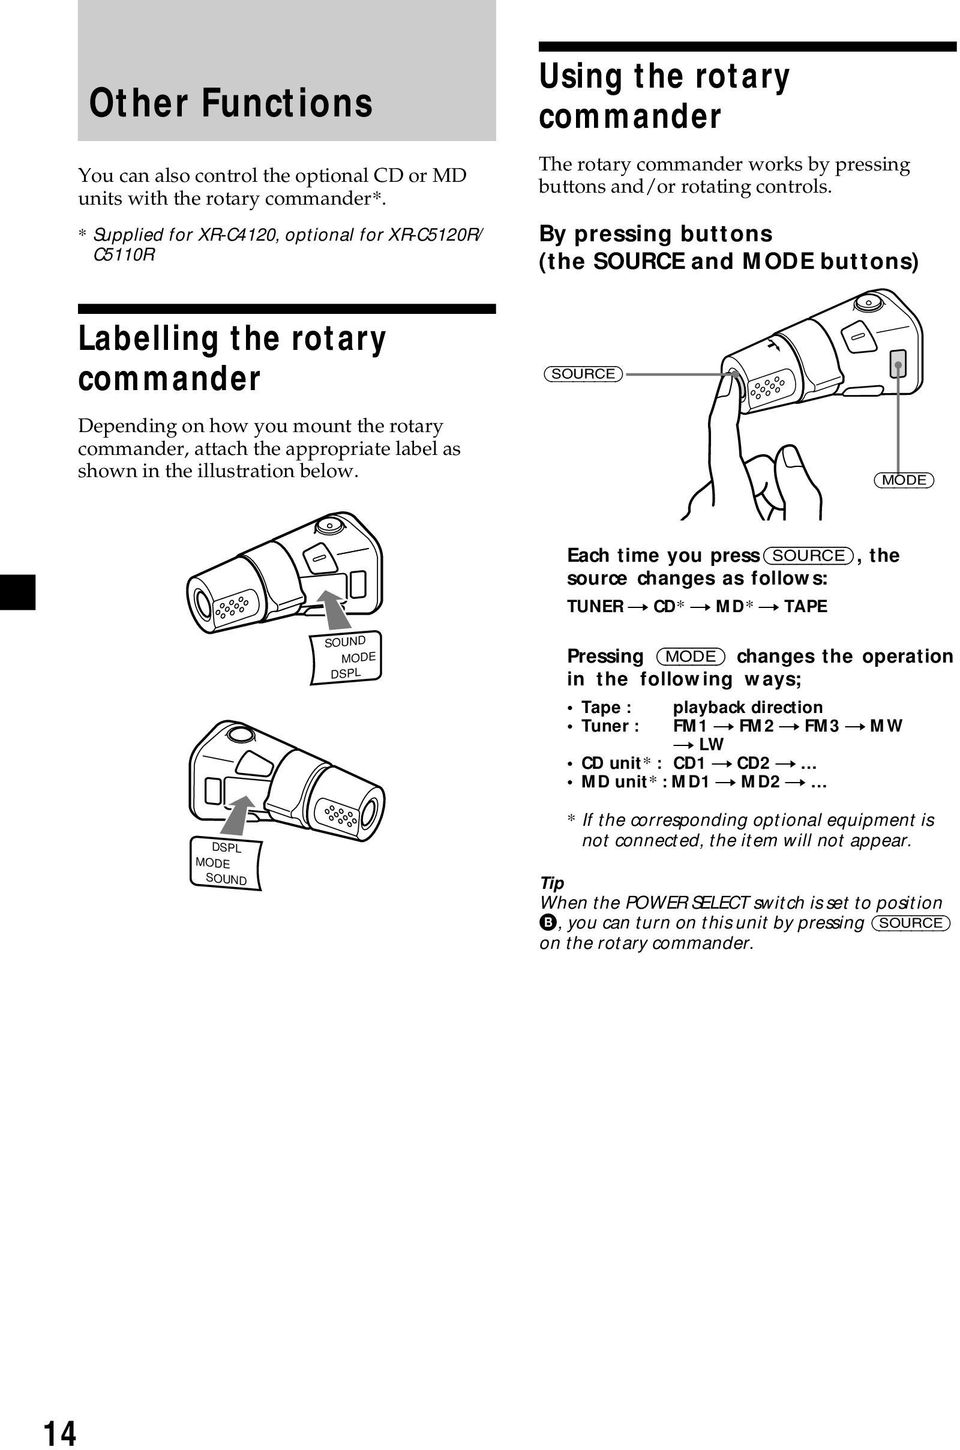 By pressing buttons (the SOURCE and MODE buttons) Labelling the rotary commander Depending on how you mount the rotary commander, attach the appropriate label as shown in the illustration below.